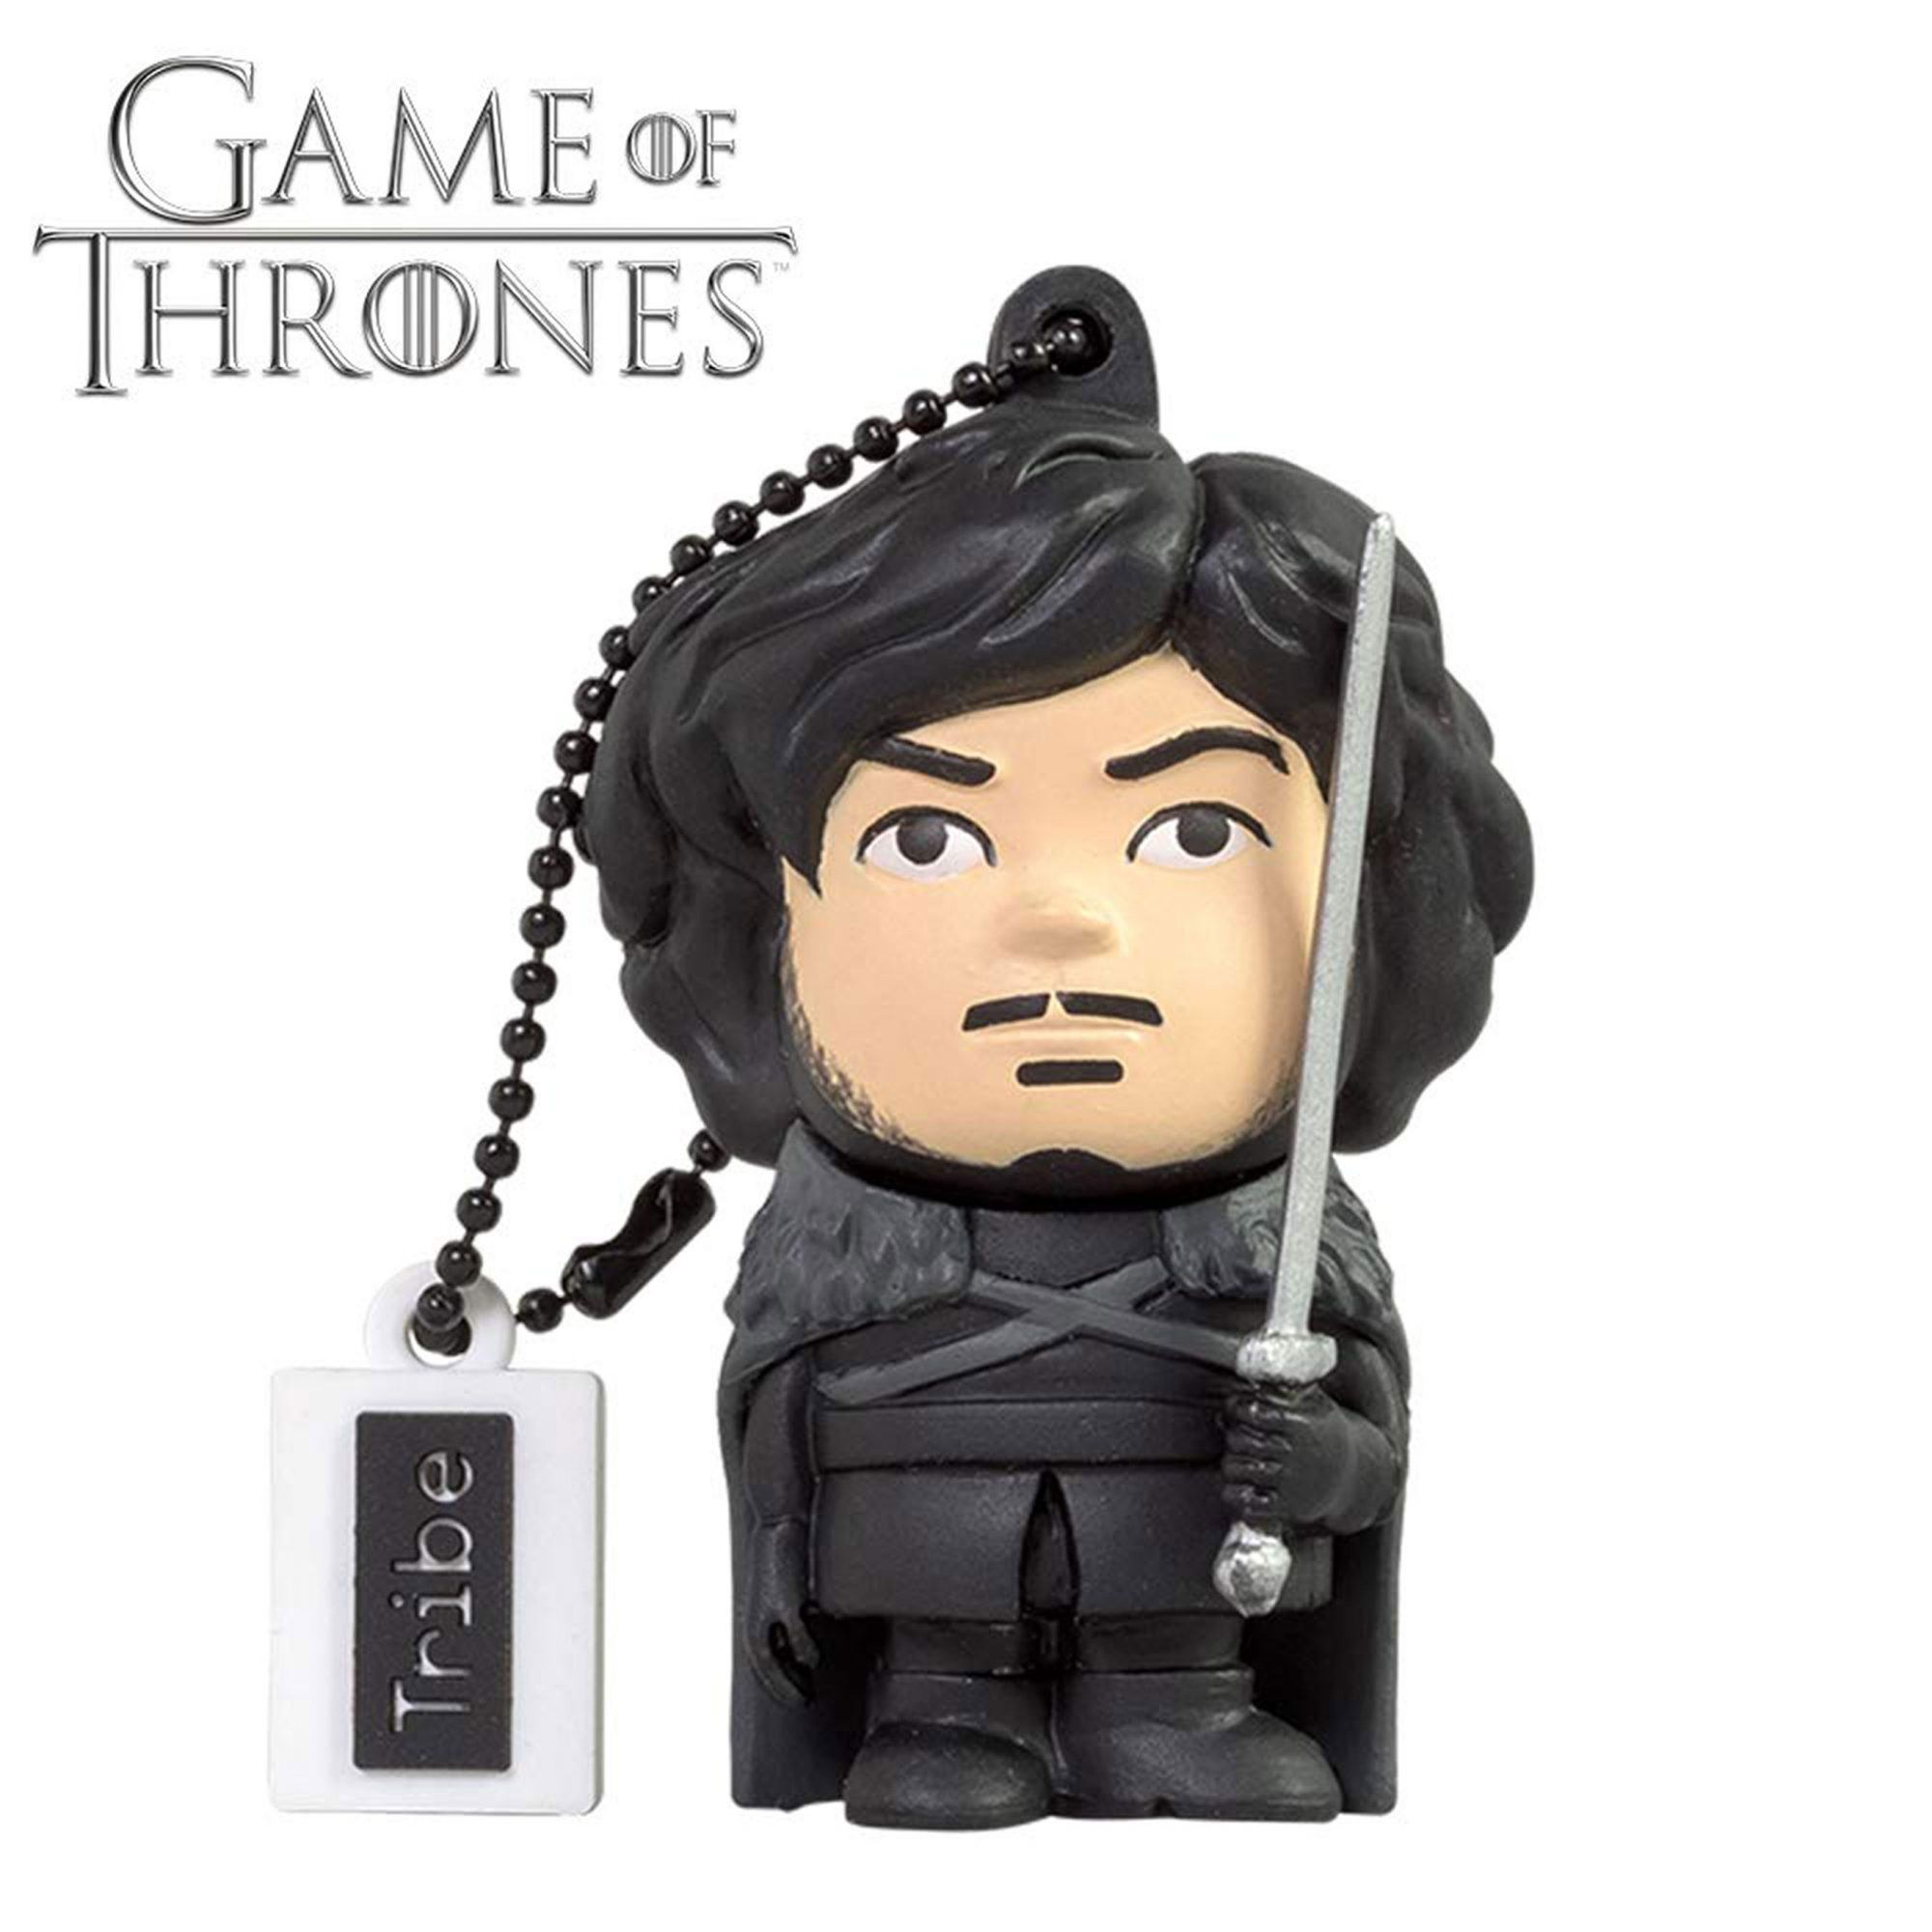 Game of Thrones Fan Gear